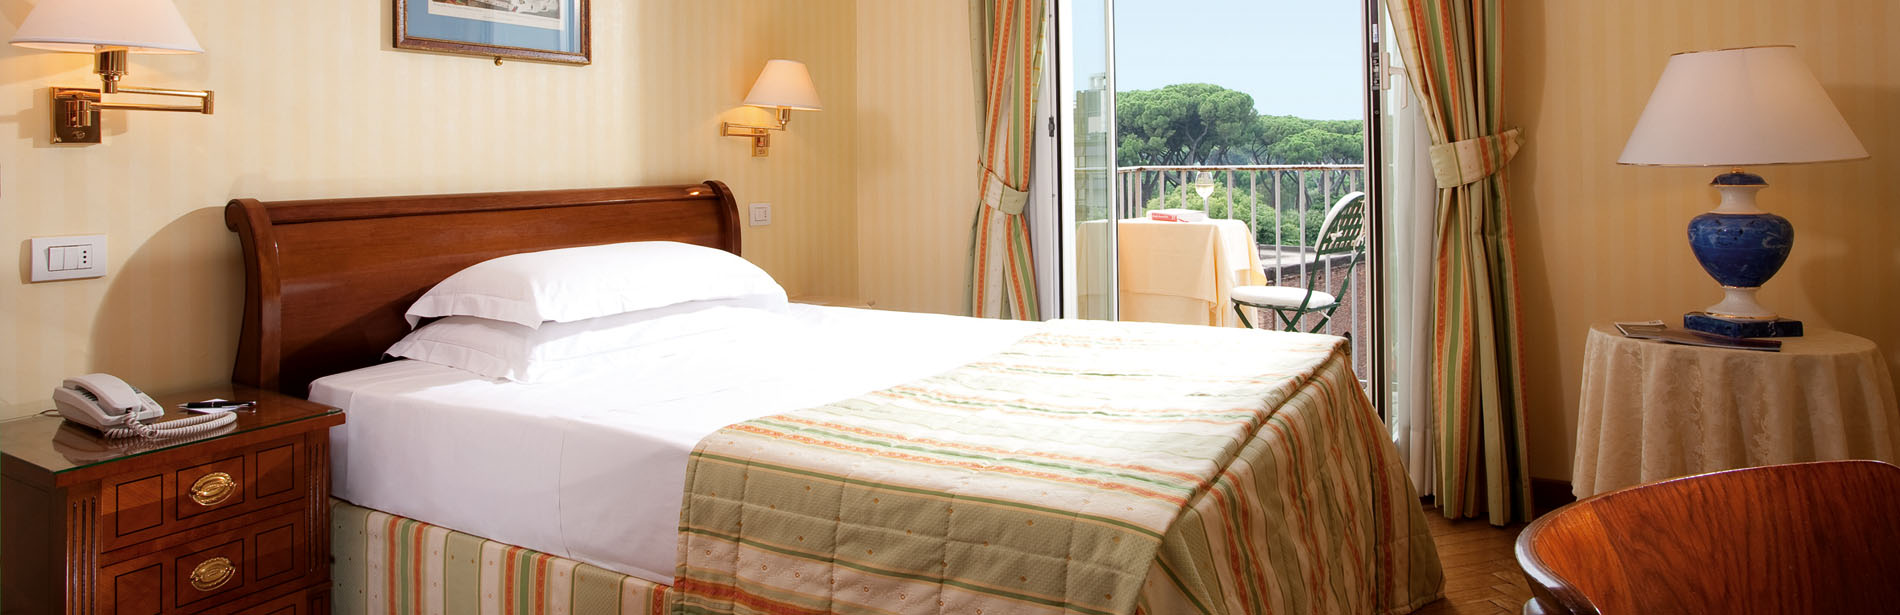 Single Classic Room - Hotel Victoria Roma